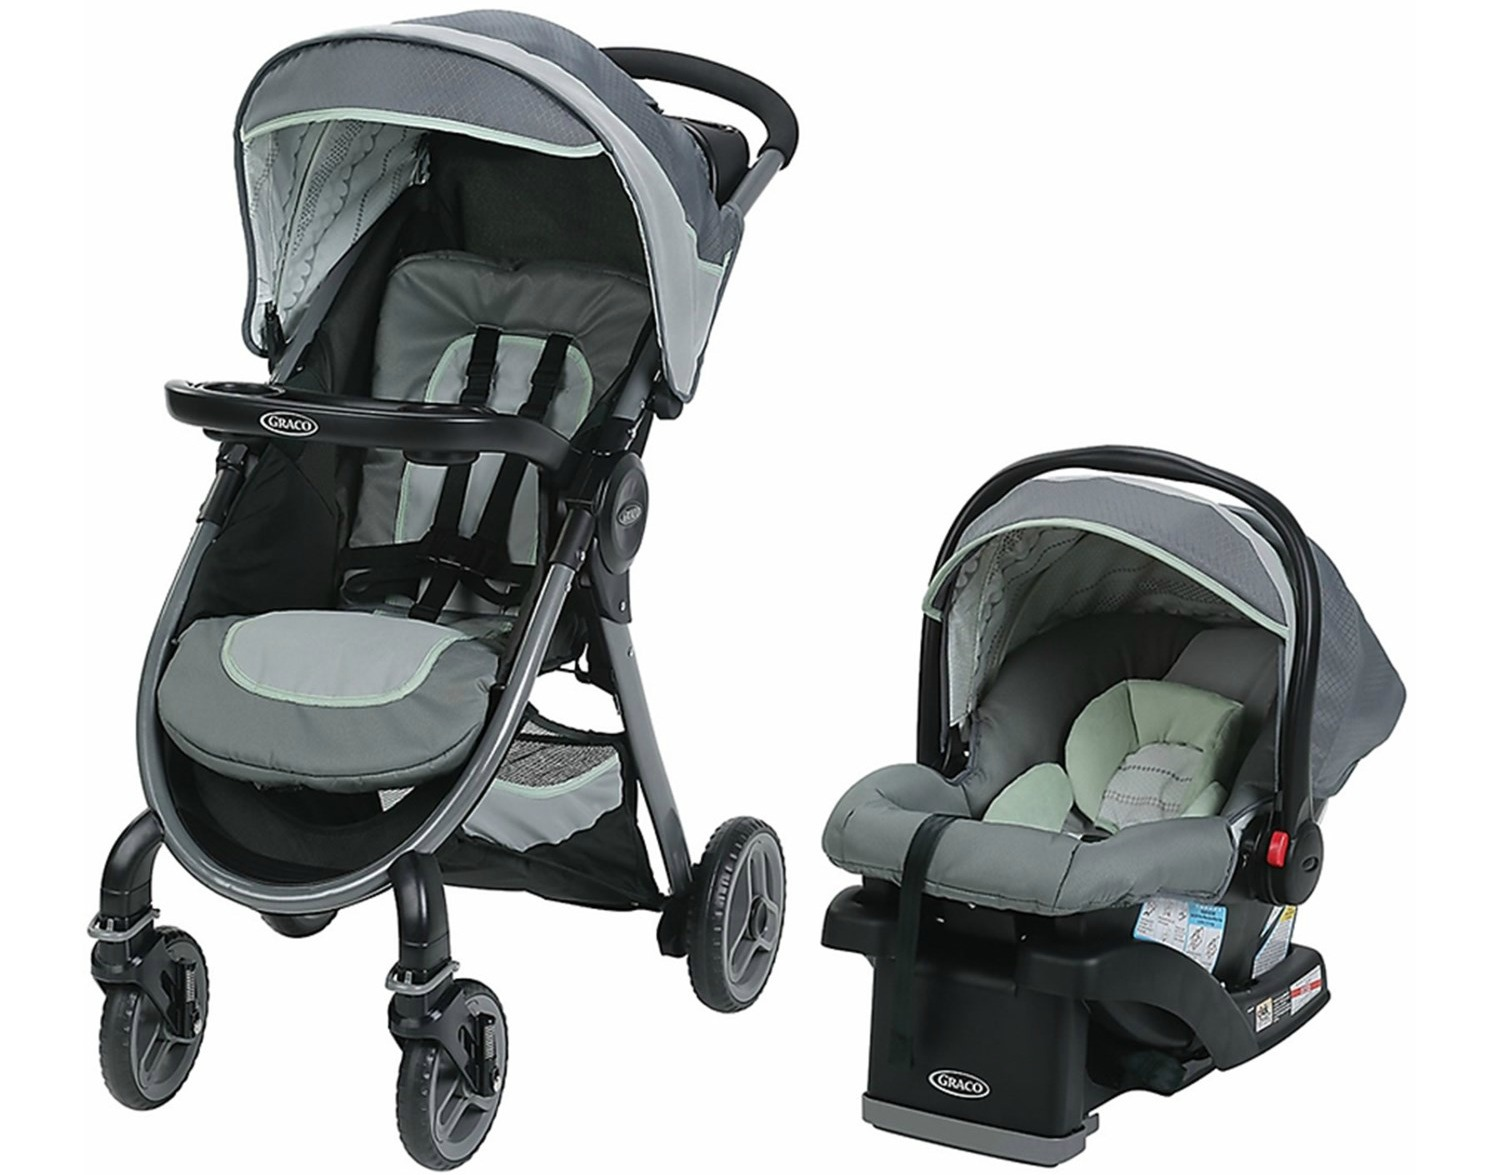 Graco Snugride Click Connect 35 Infant Car Seat Only 79 99 Shipped